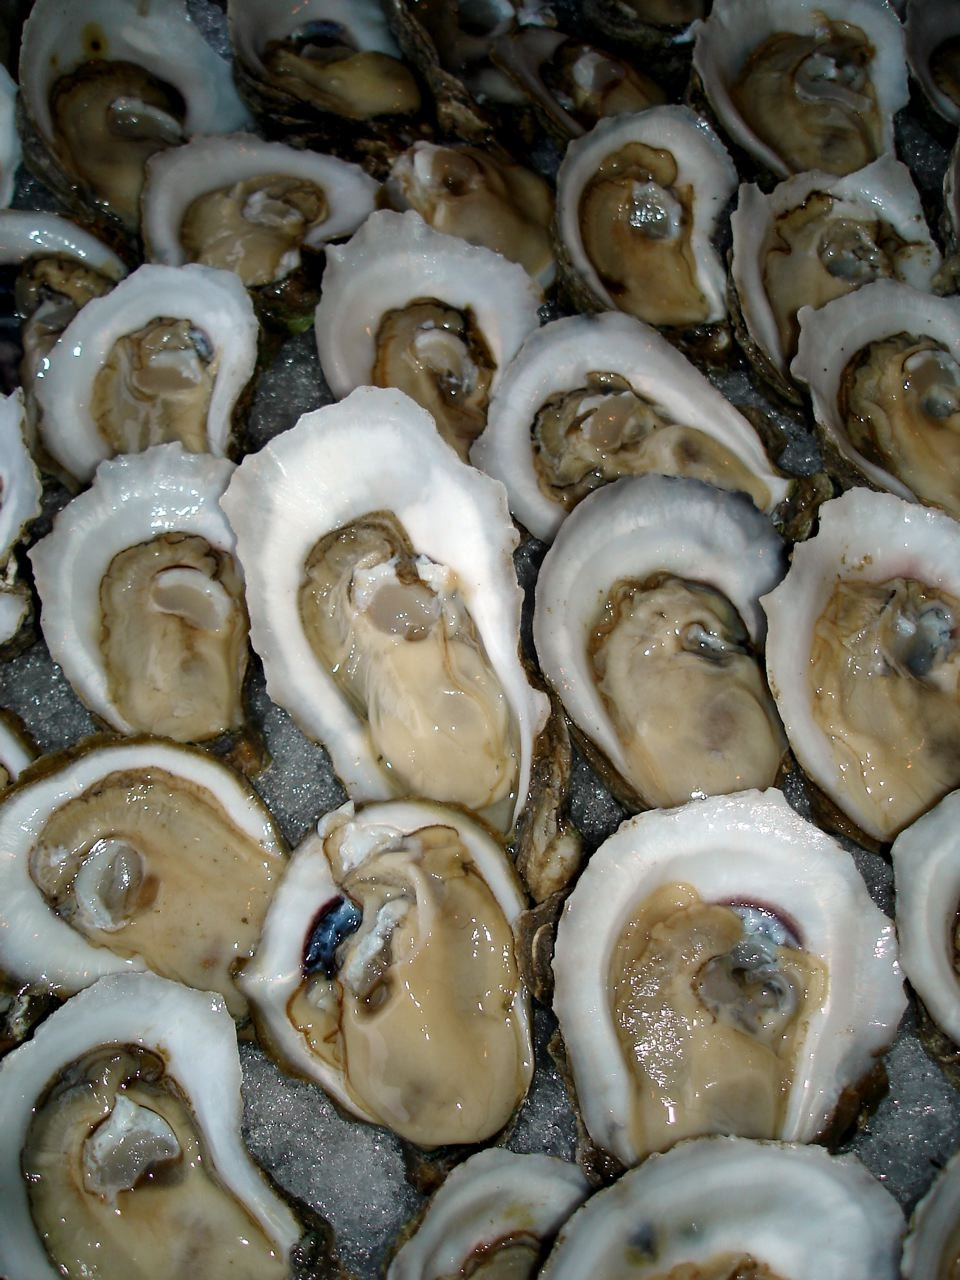 Oysters - 02 photo